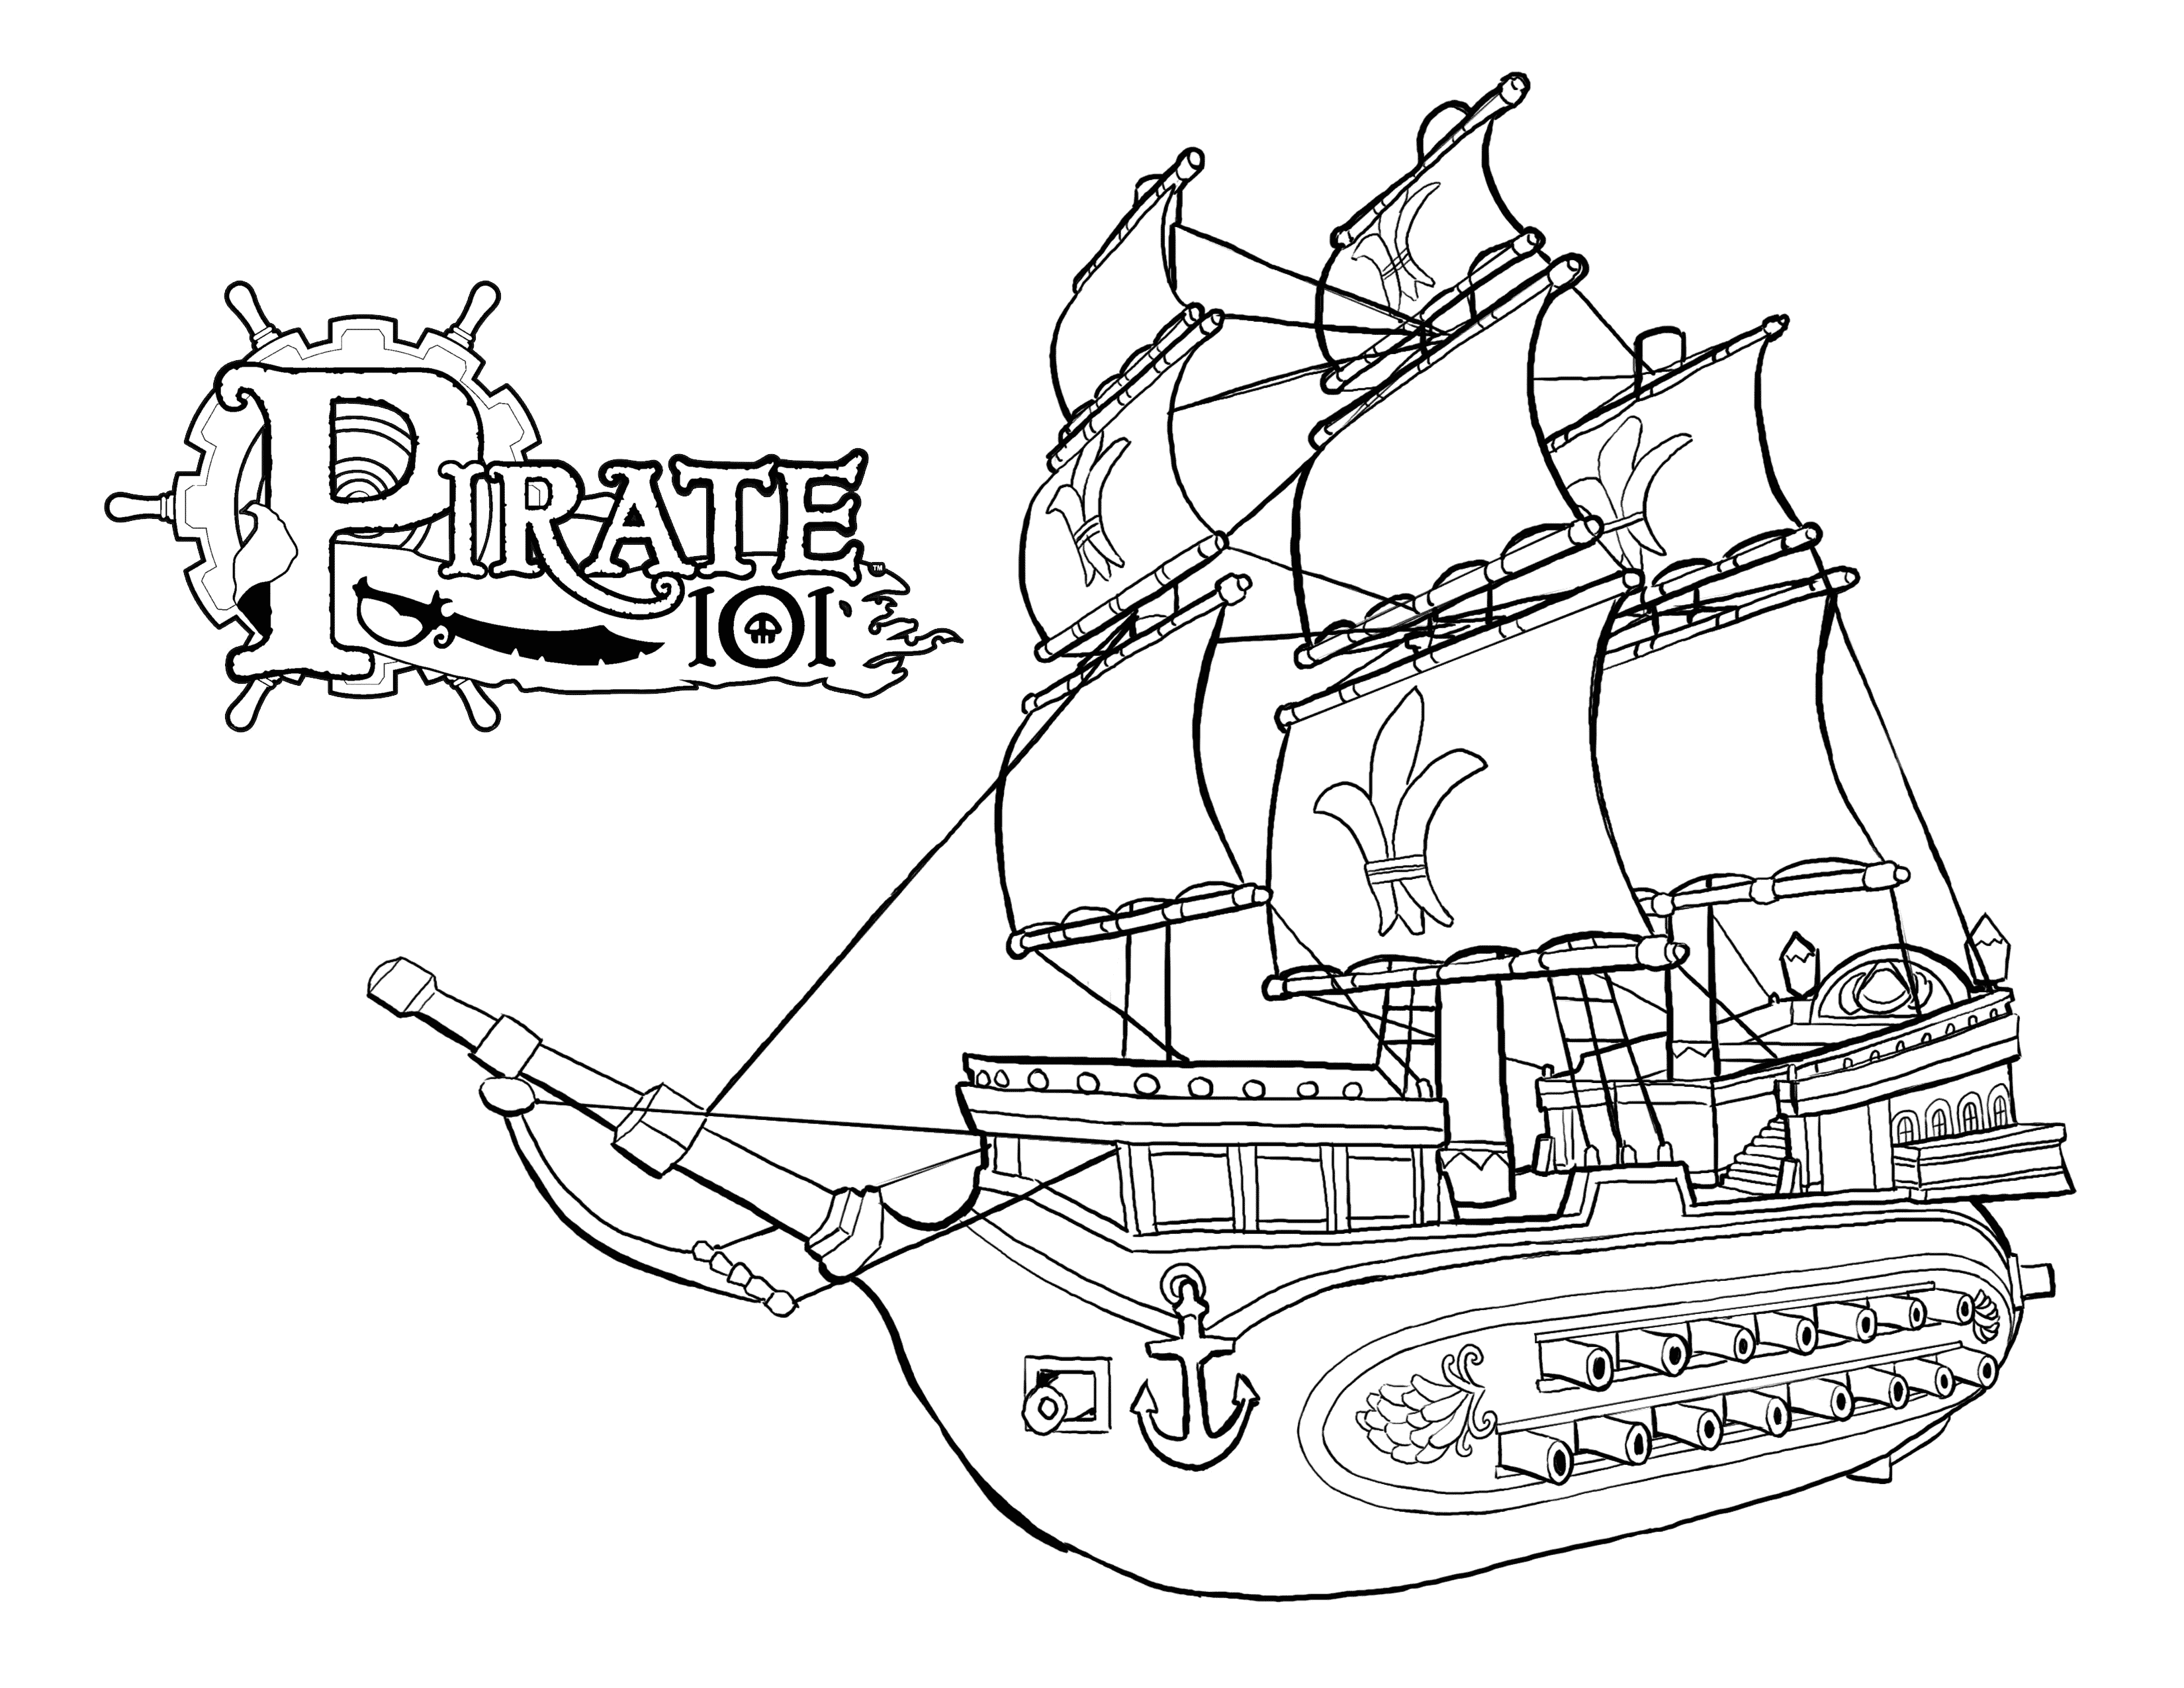 Pirate Skulls Coloring Pages